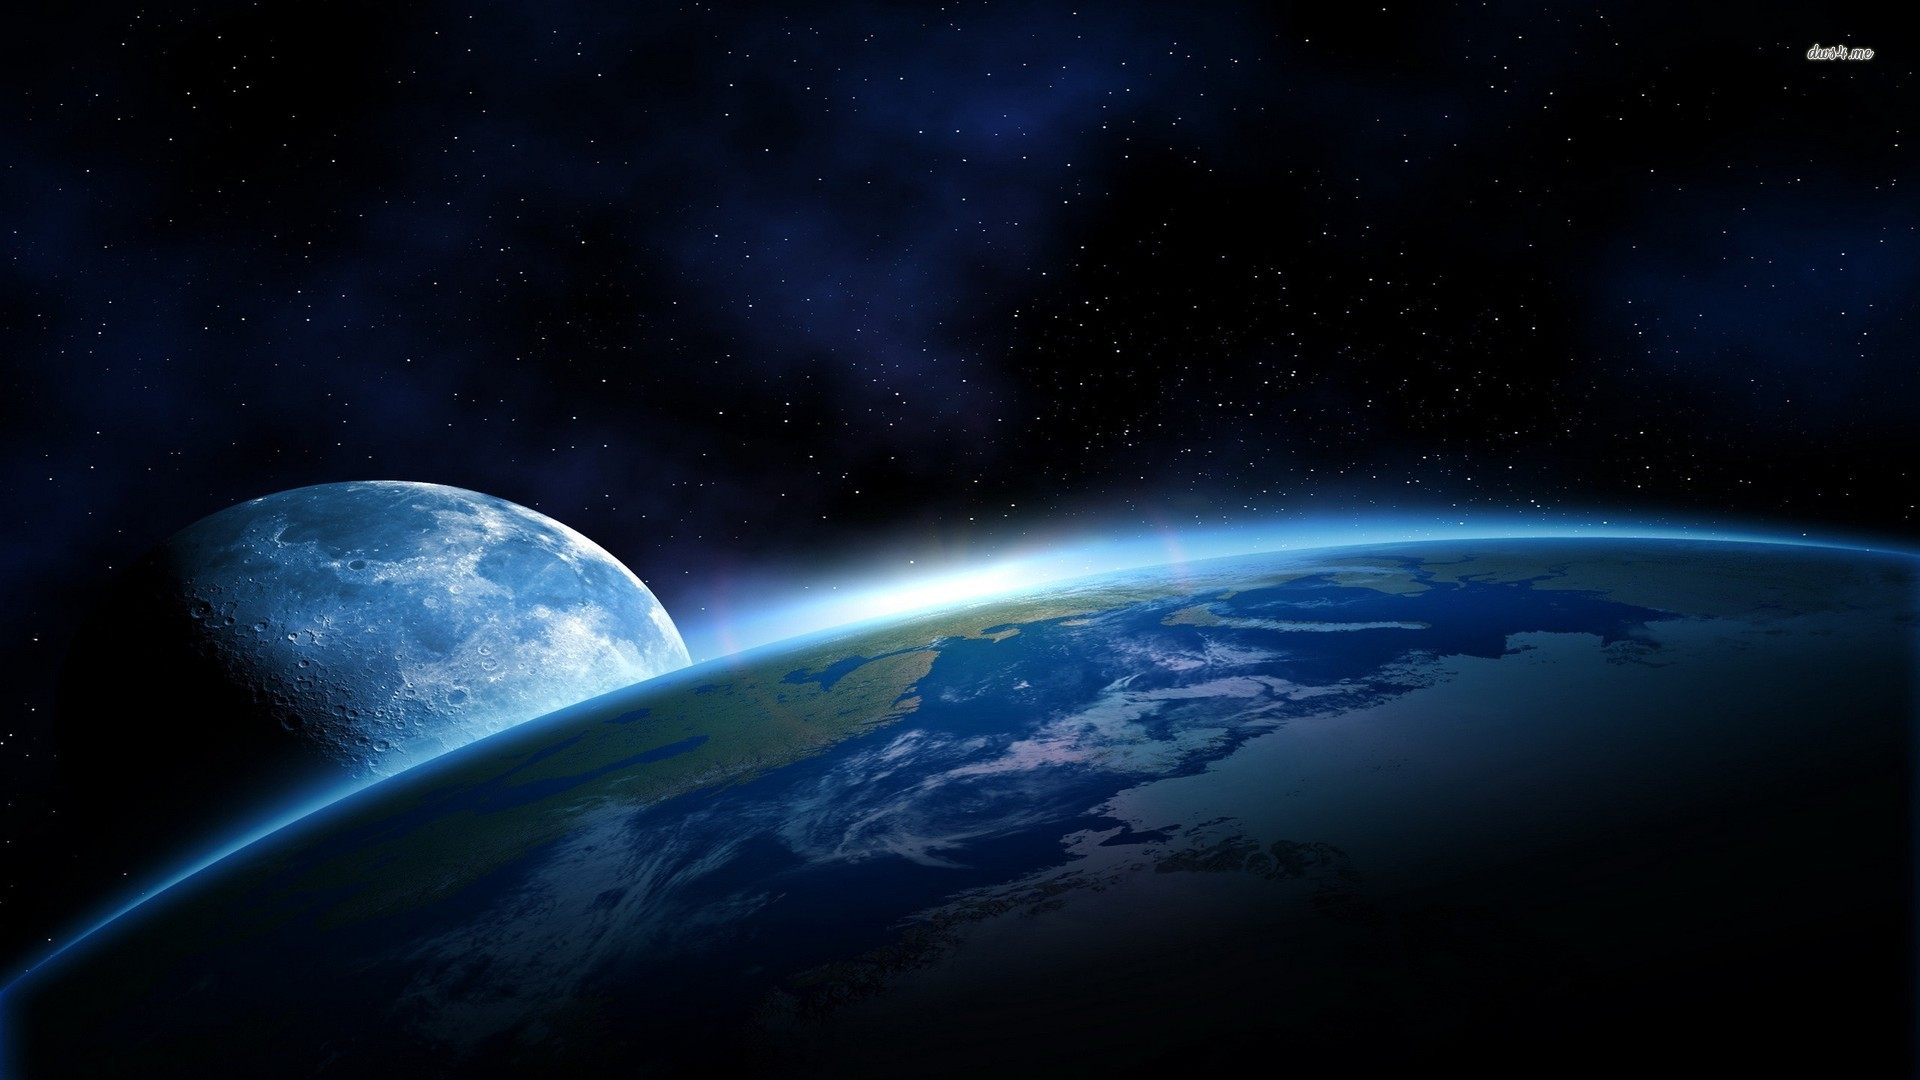 Earth from moon wallpaper 62 images - Space moon wallpaper ...